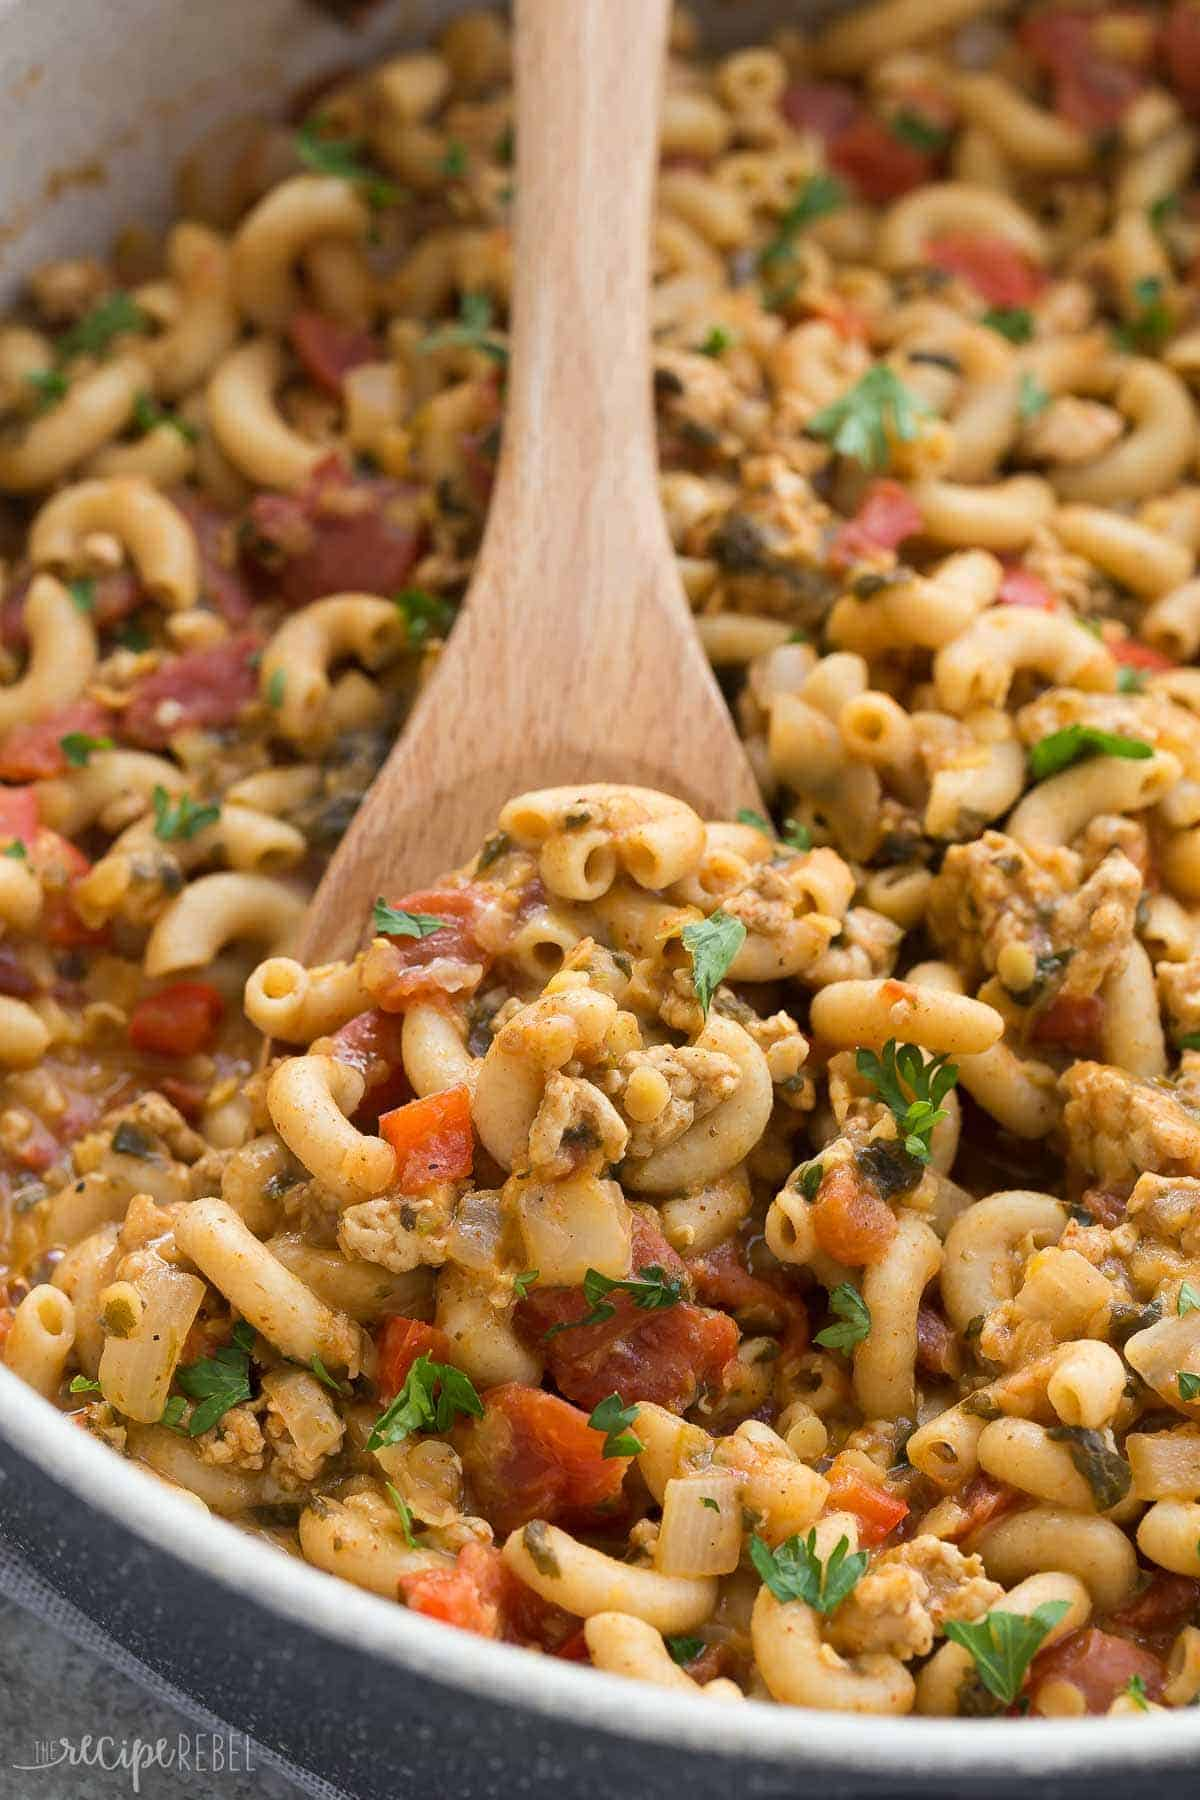 This One Pot Turkey Chili Mac is an easy, healthy weeknight dinner recipe that's made in just one pan! Loaded with vegetables and lentils for extra protein and fibre! Includes step by step recipe video. | one pot meal | one pan | healthy dinner | high protein | high fiber | ground turkey | pasta recipe | weeknight meal | 30 minutes